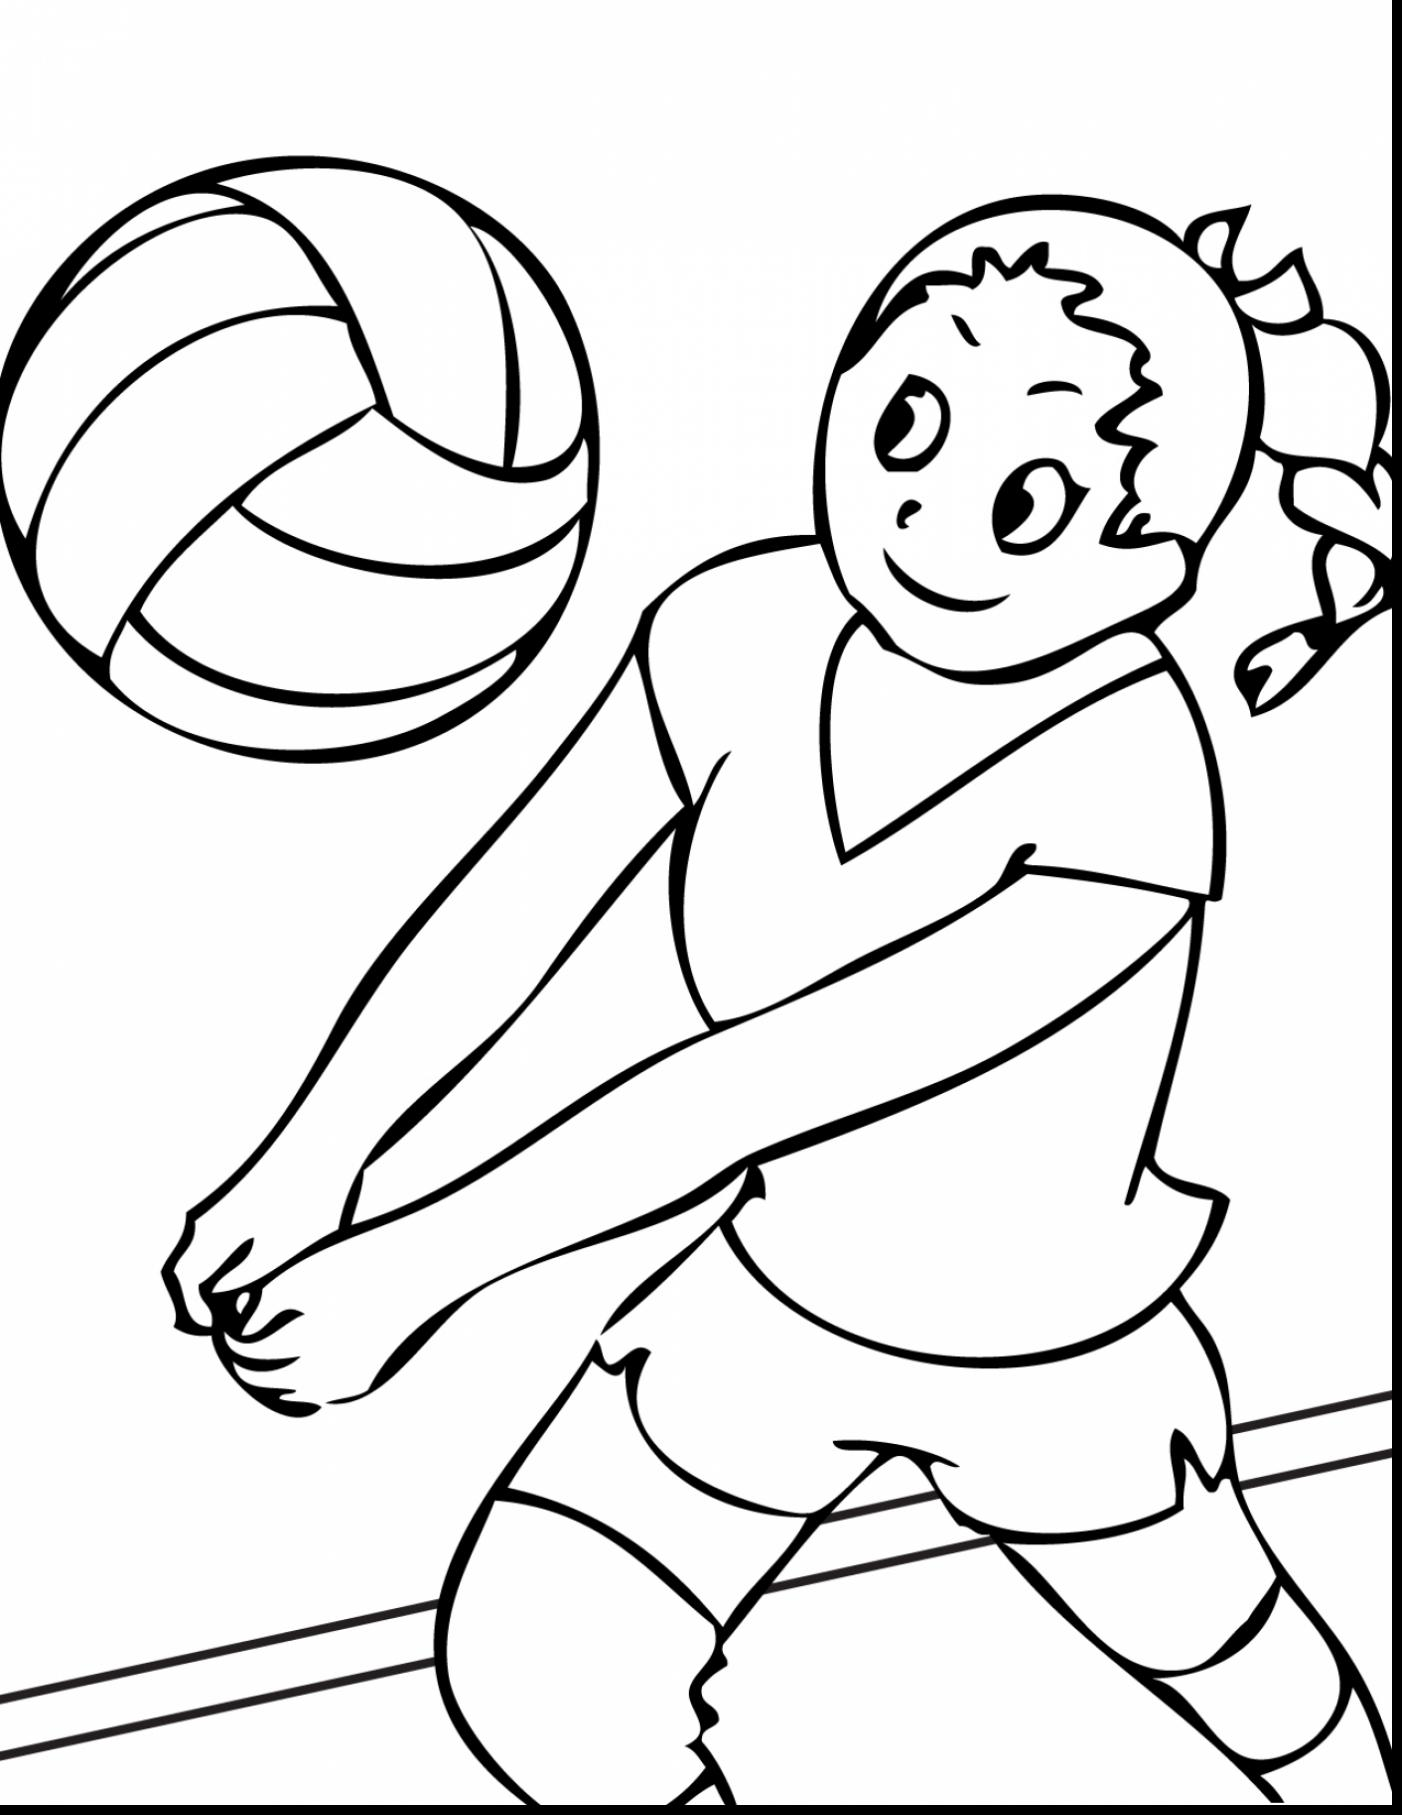 1402x1815 Surprising Volleyball Sports Coloring Pages With Volleyball